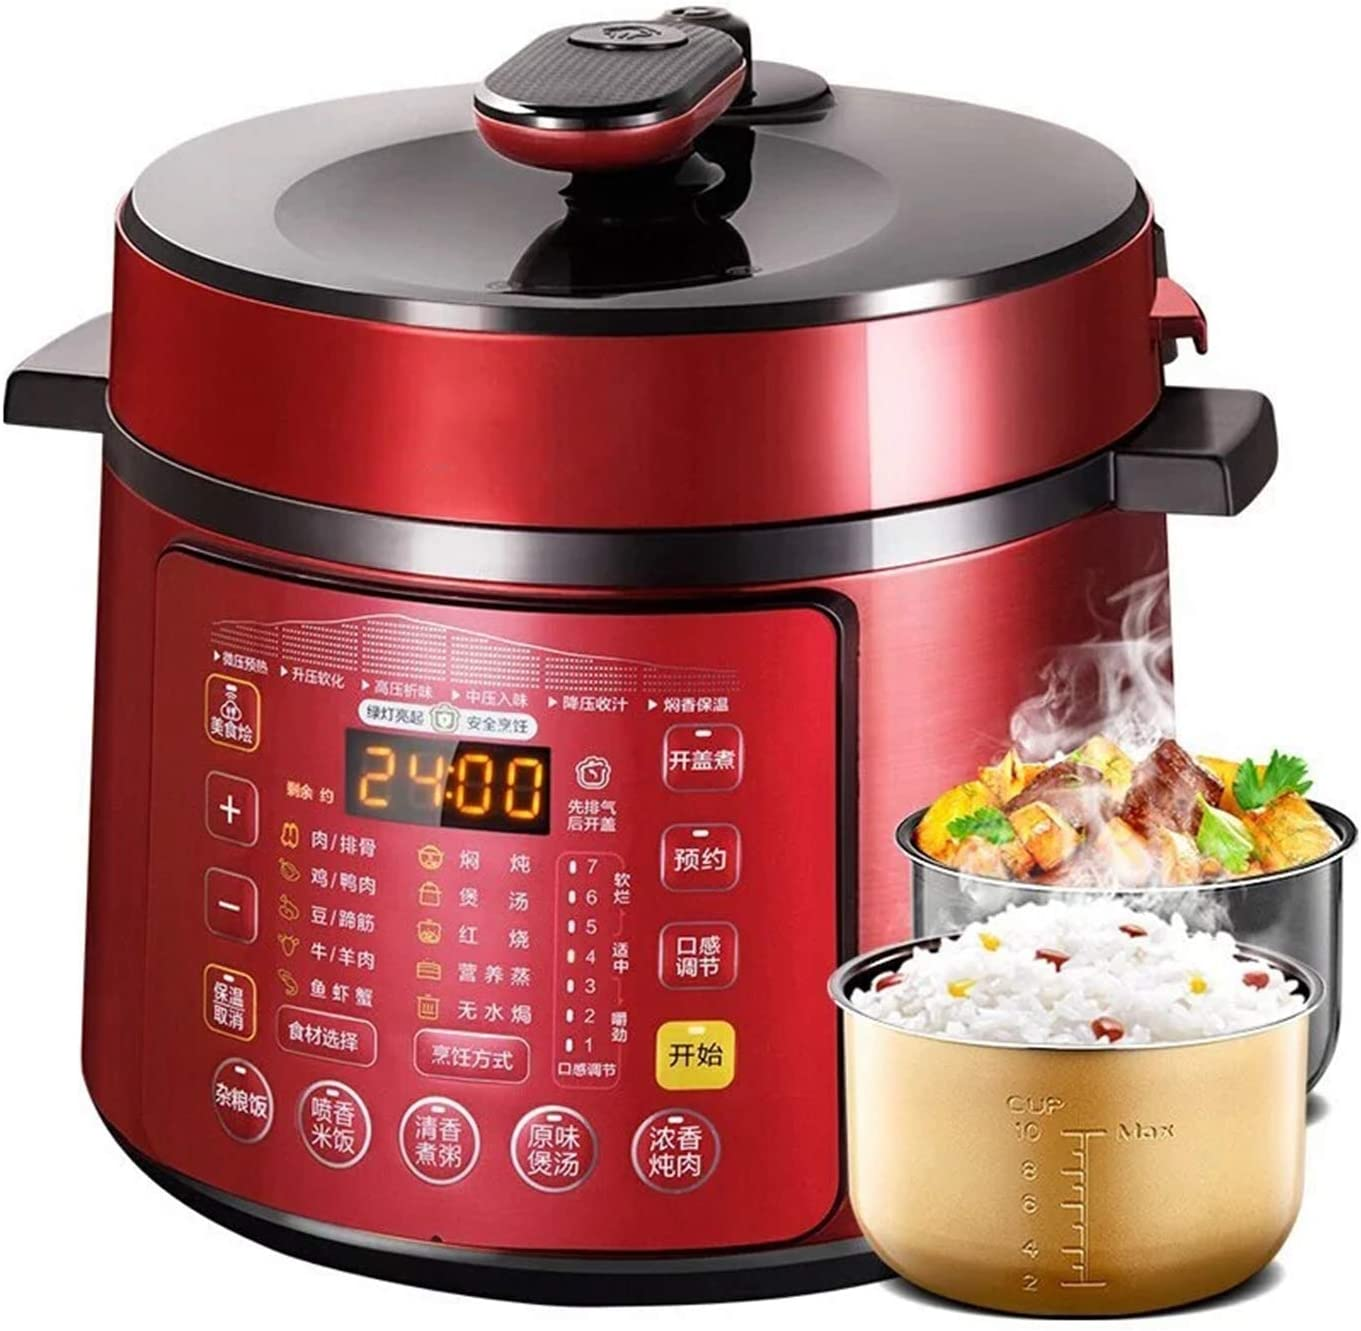 NDHENG Electric Pressure Cooker, Slow Cooker, Rice Cooker, Steamer, 5 L, 15 One-Touch Programs